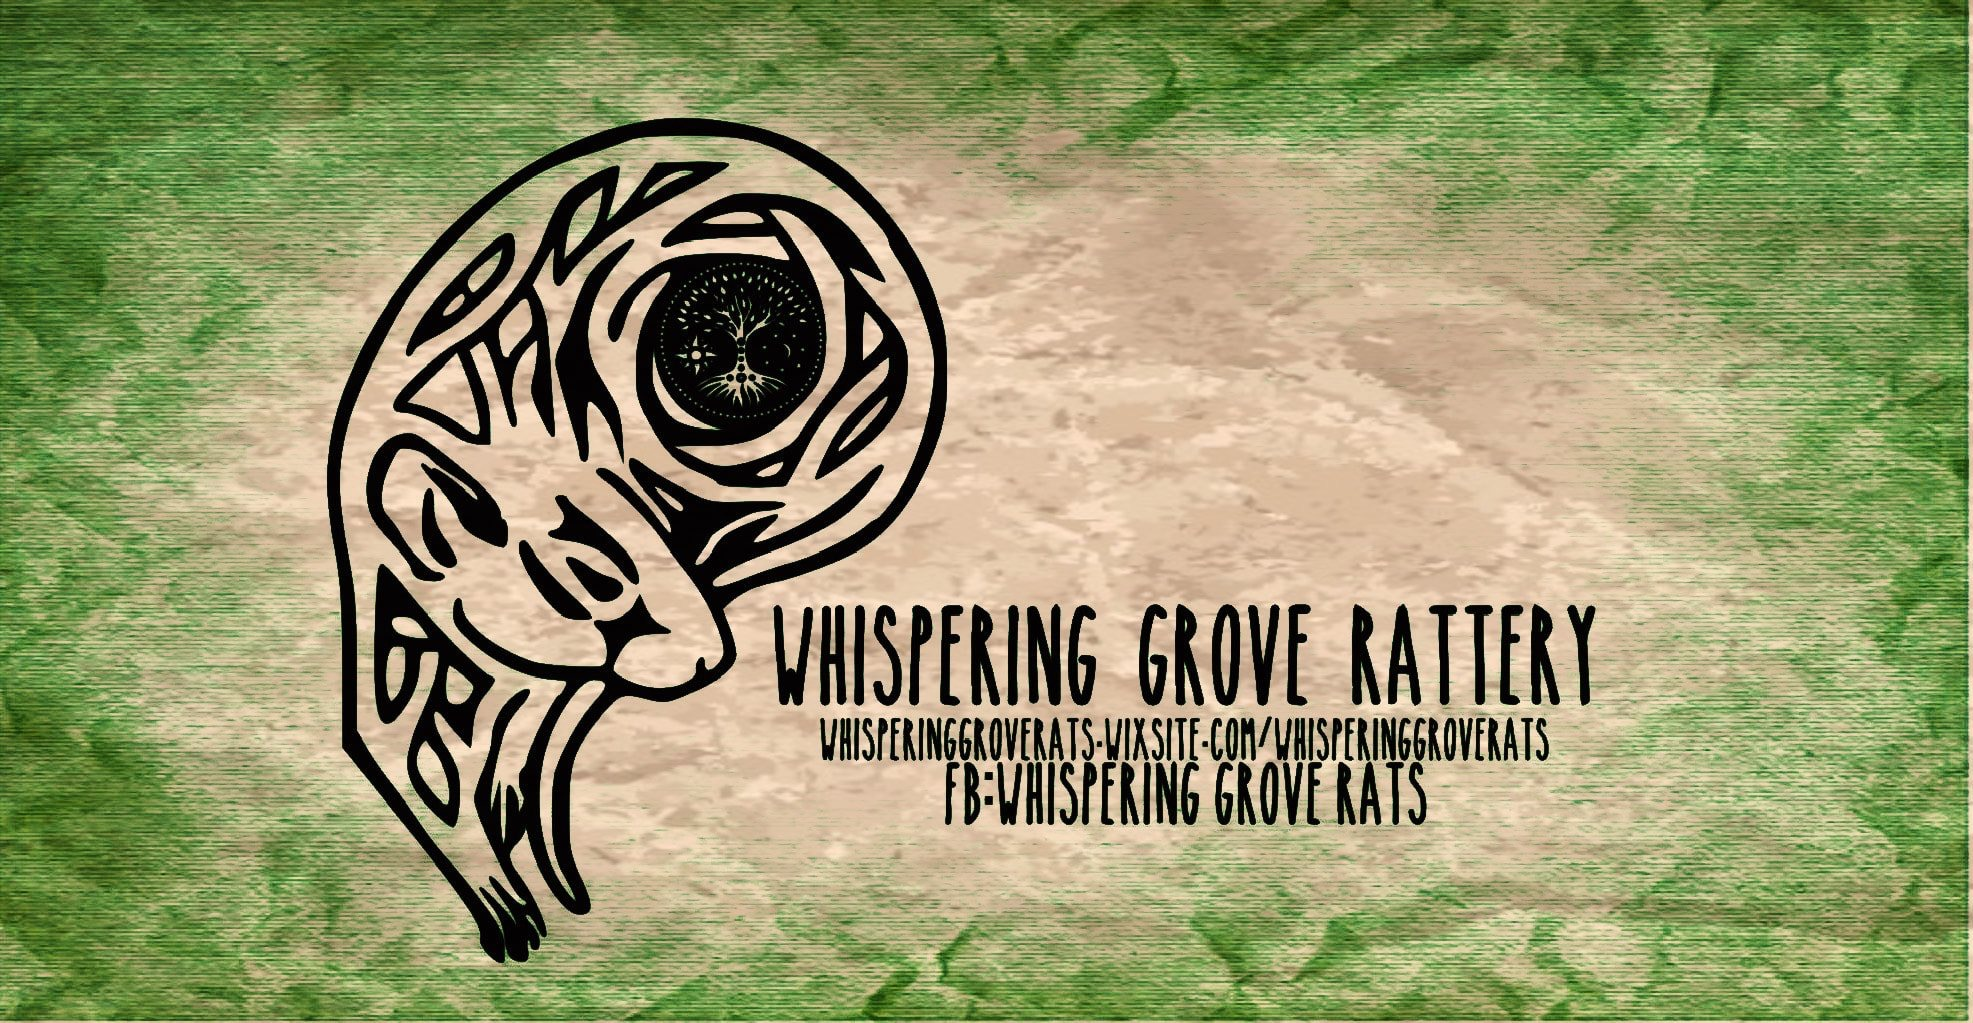 Whispering Grove Rattery